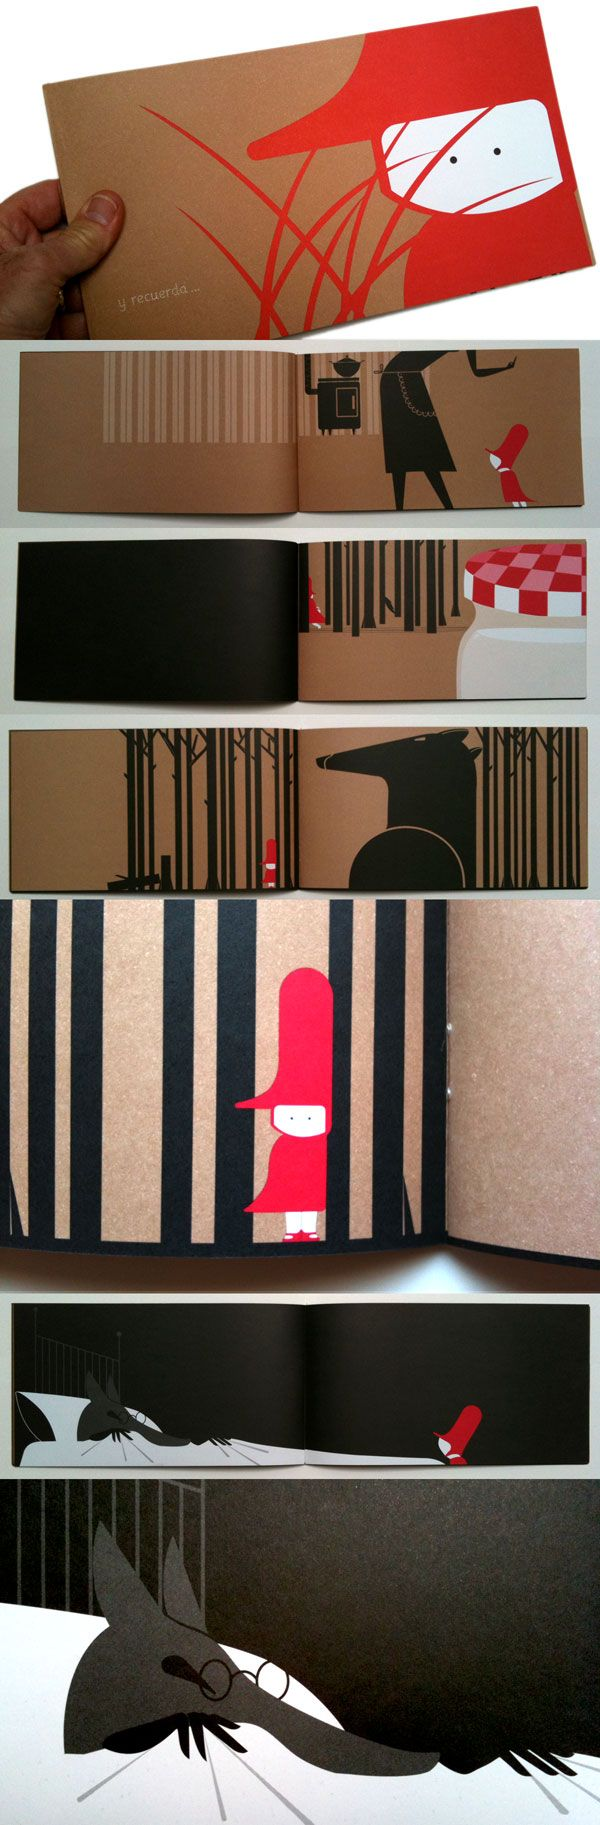 'Y Recuerda' by Juanjo G. Oller. Wordless, three-colour, gorgeously designed version of Little Red Riding Hood.